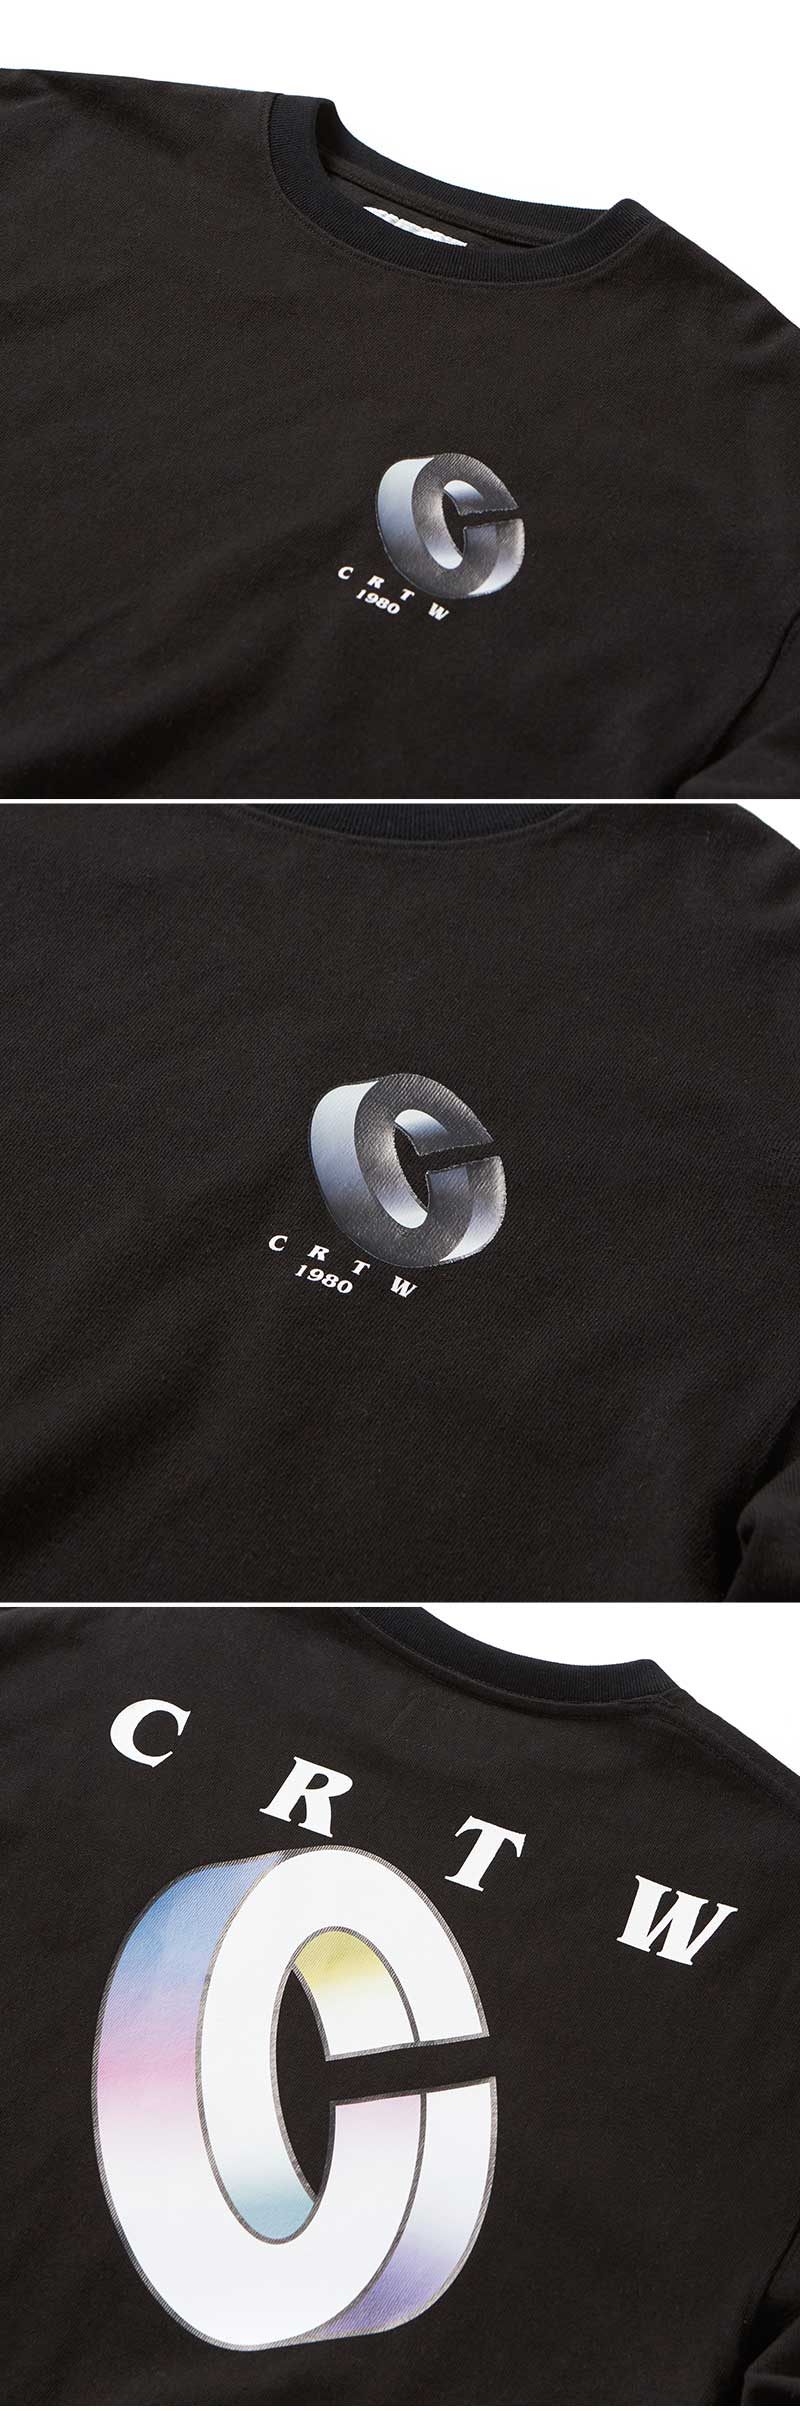 크리틱(CRITIC) CRTW 1980 LONG SLEEVE T-SHIRT(BLACK)_CTOGPRL10UC6